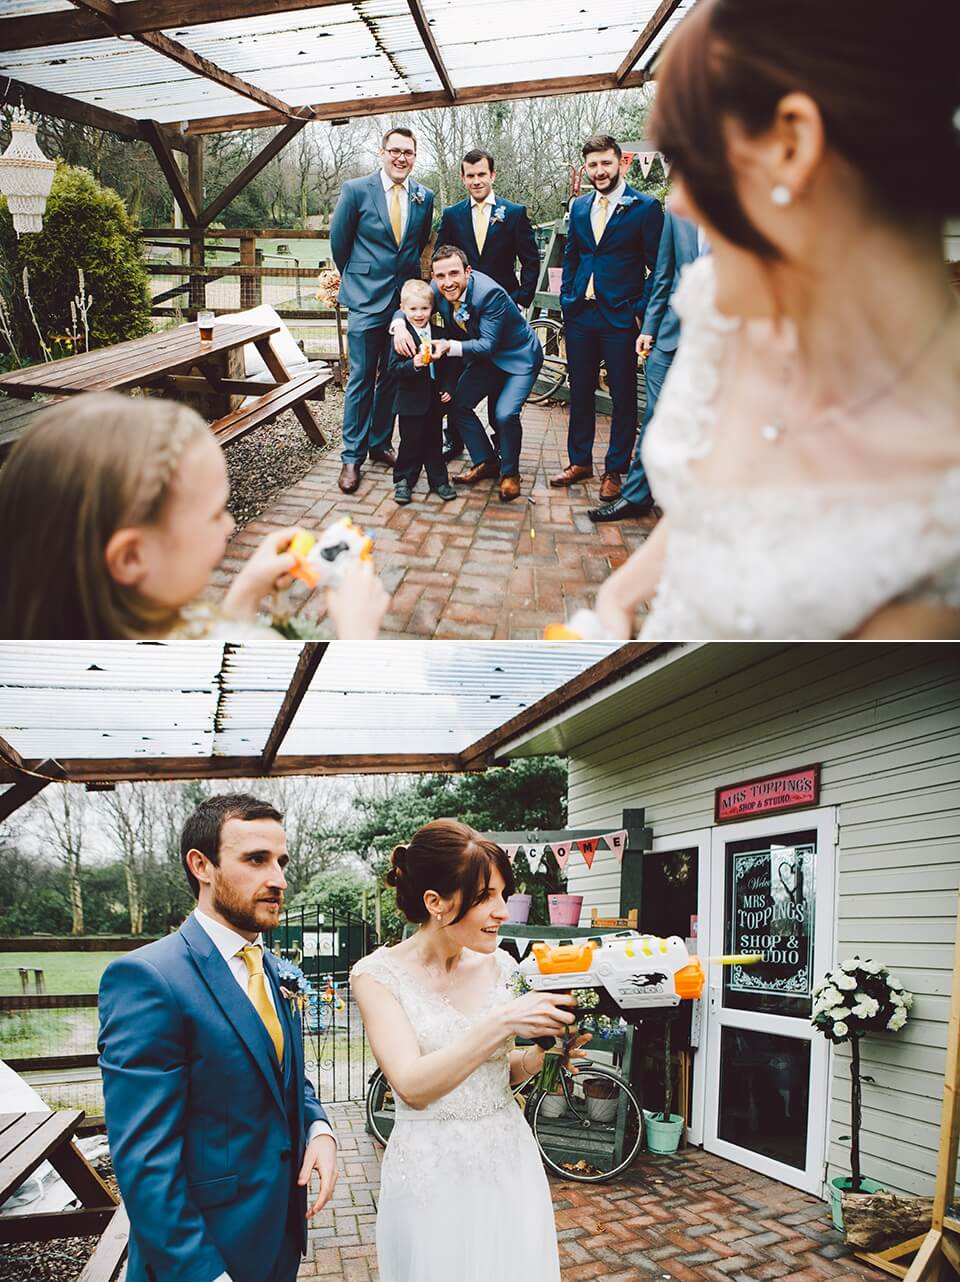 Fun Bridal Party Portrait Photography Rainbow Themed Wedding in the Rain